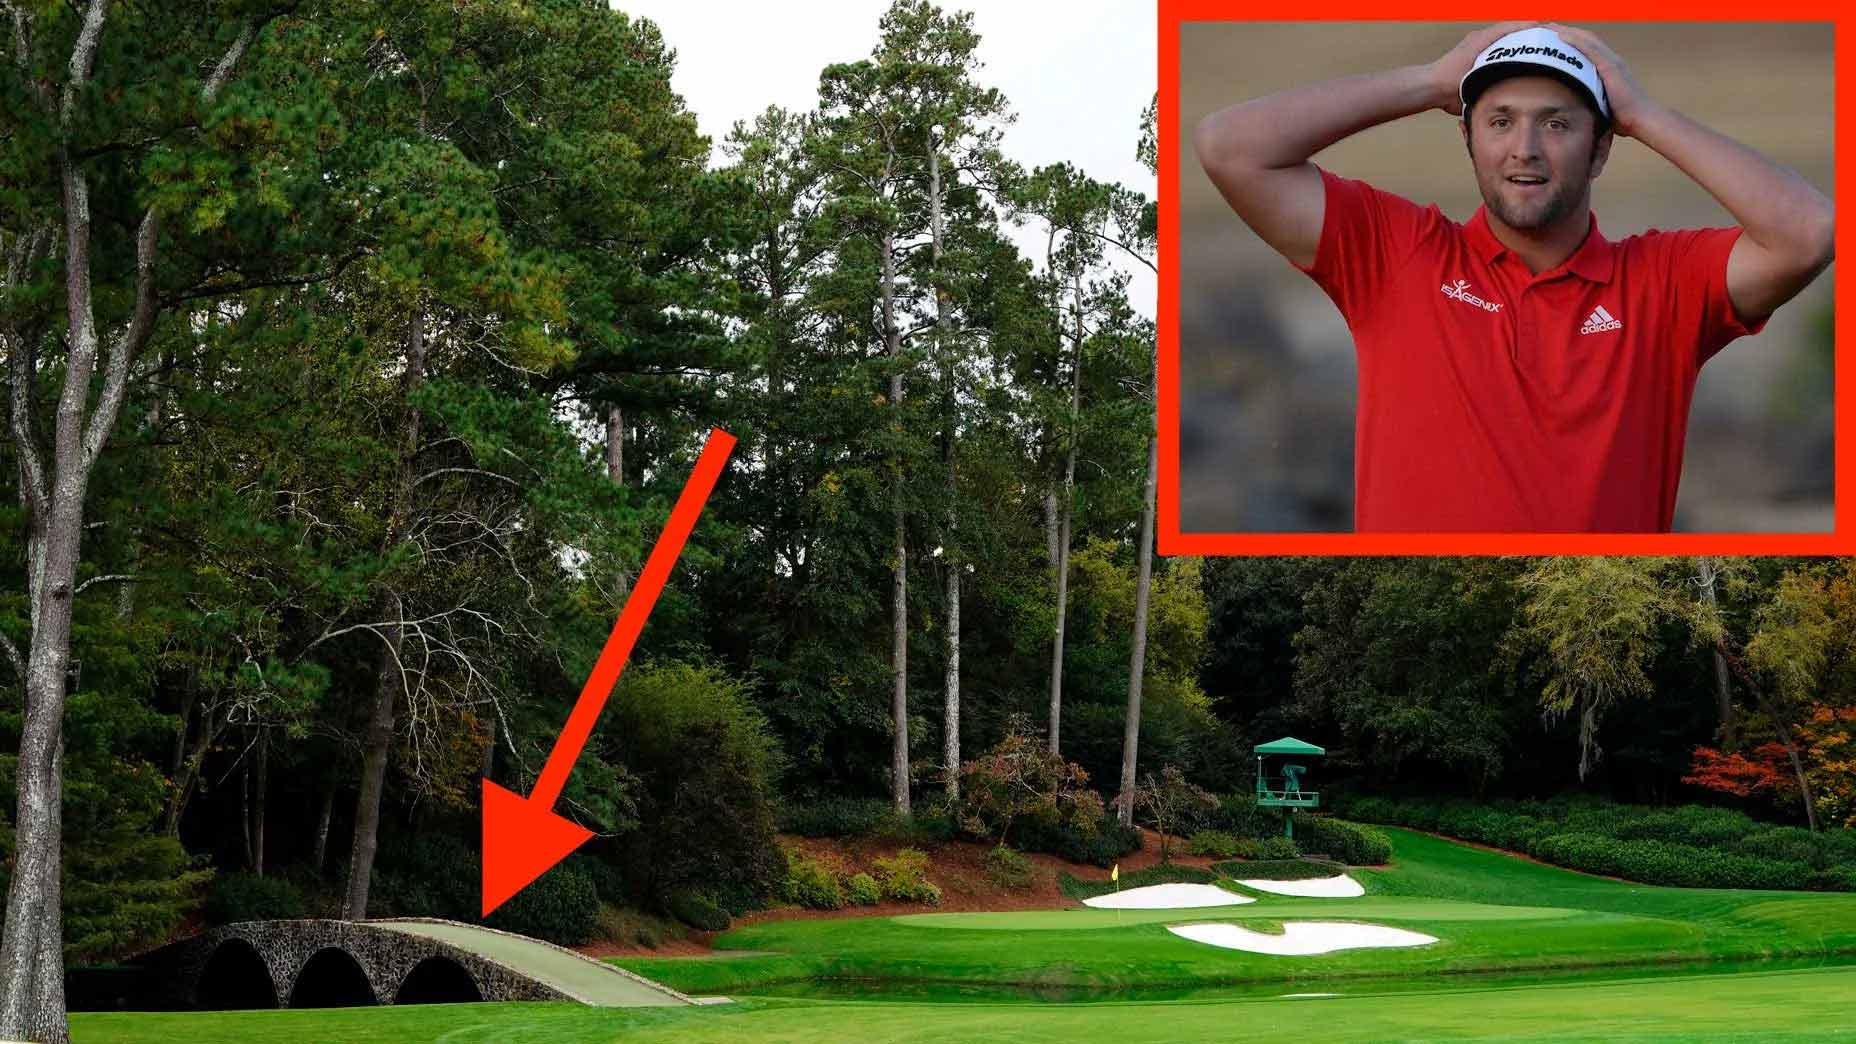 Jon Rahm and the 12th hole at Augusta National